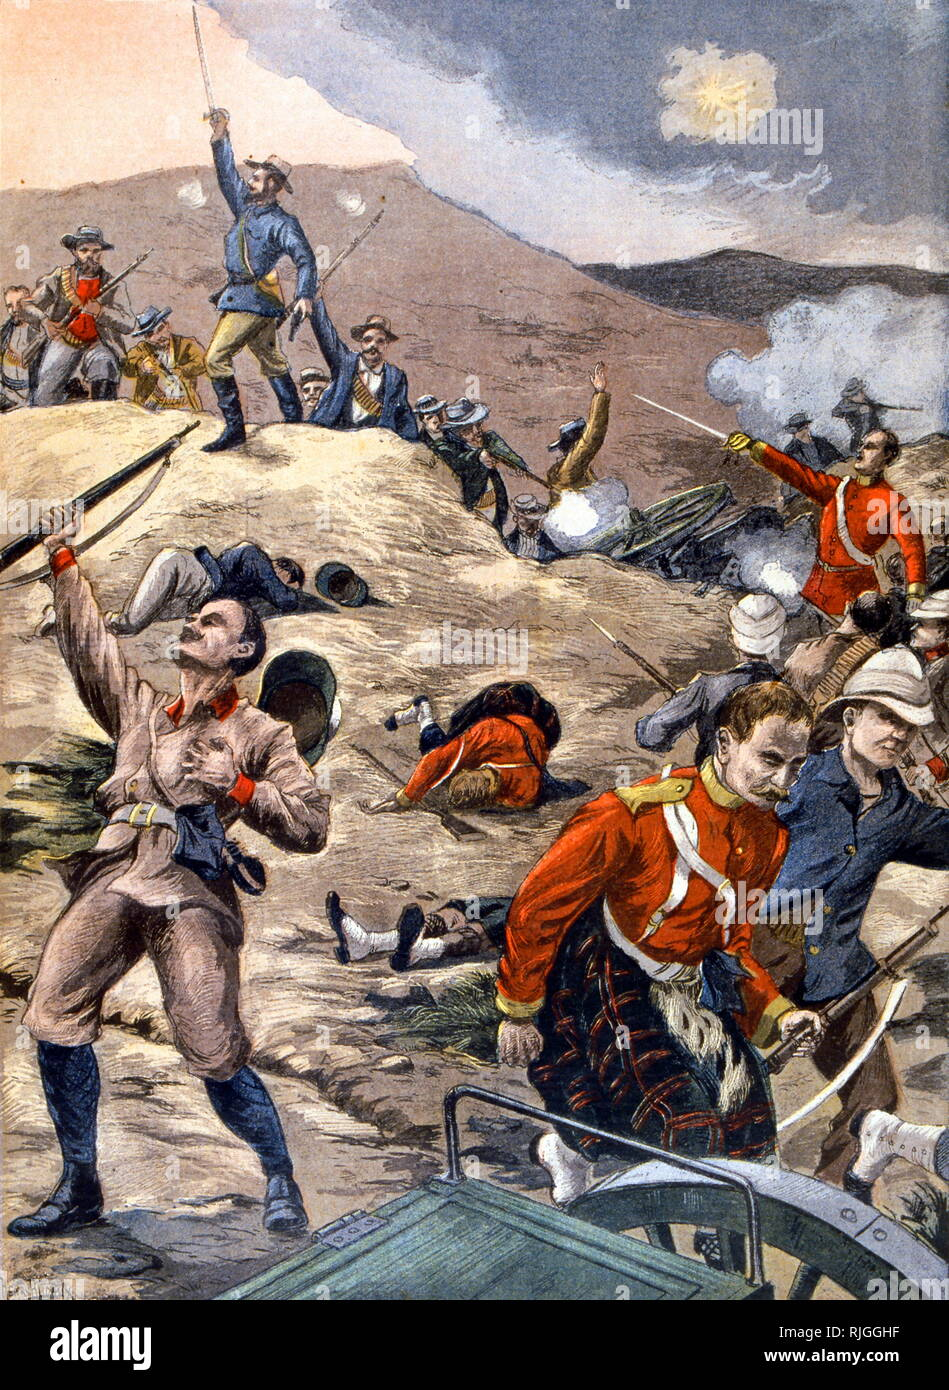 Illustration showing British soldiers defeated by Boer fighters, during the Boer War 1900 - Stock Image